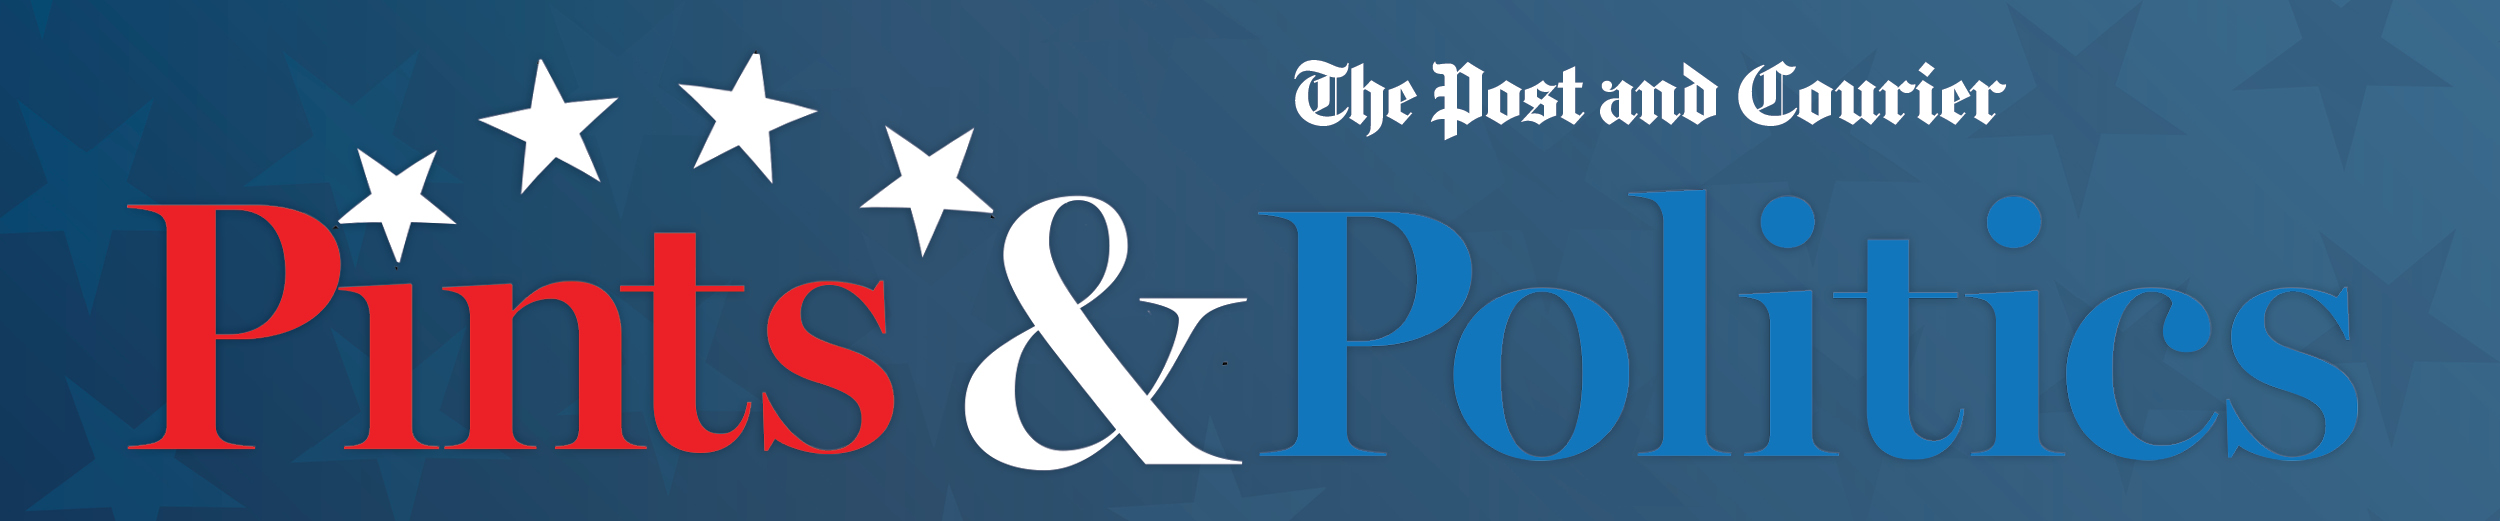 Pints & Politics by The Post and Courier